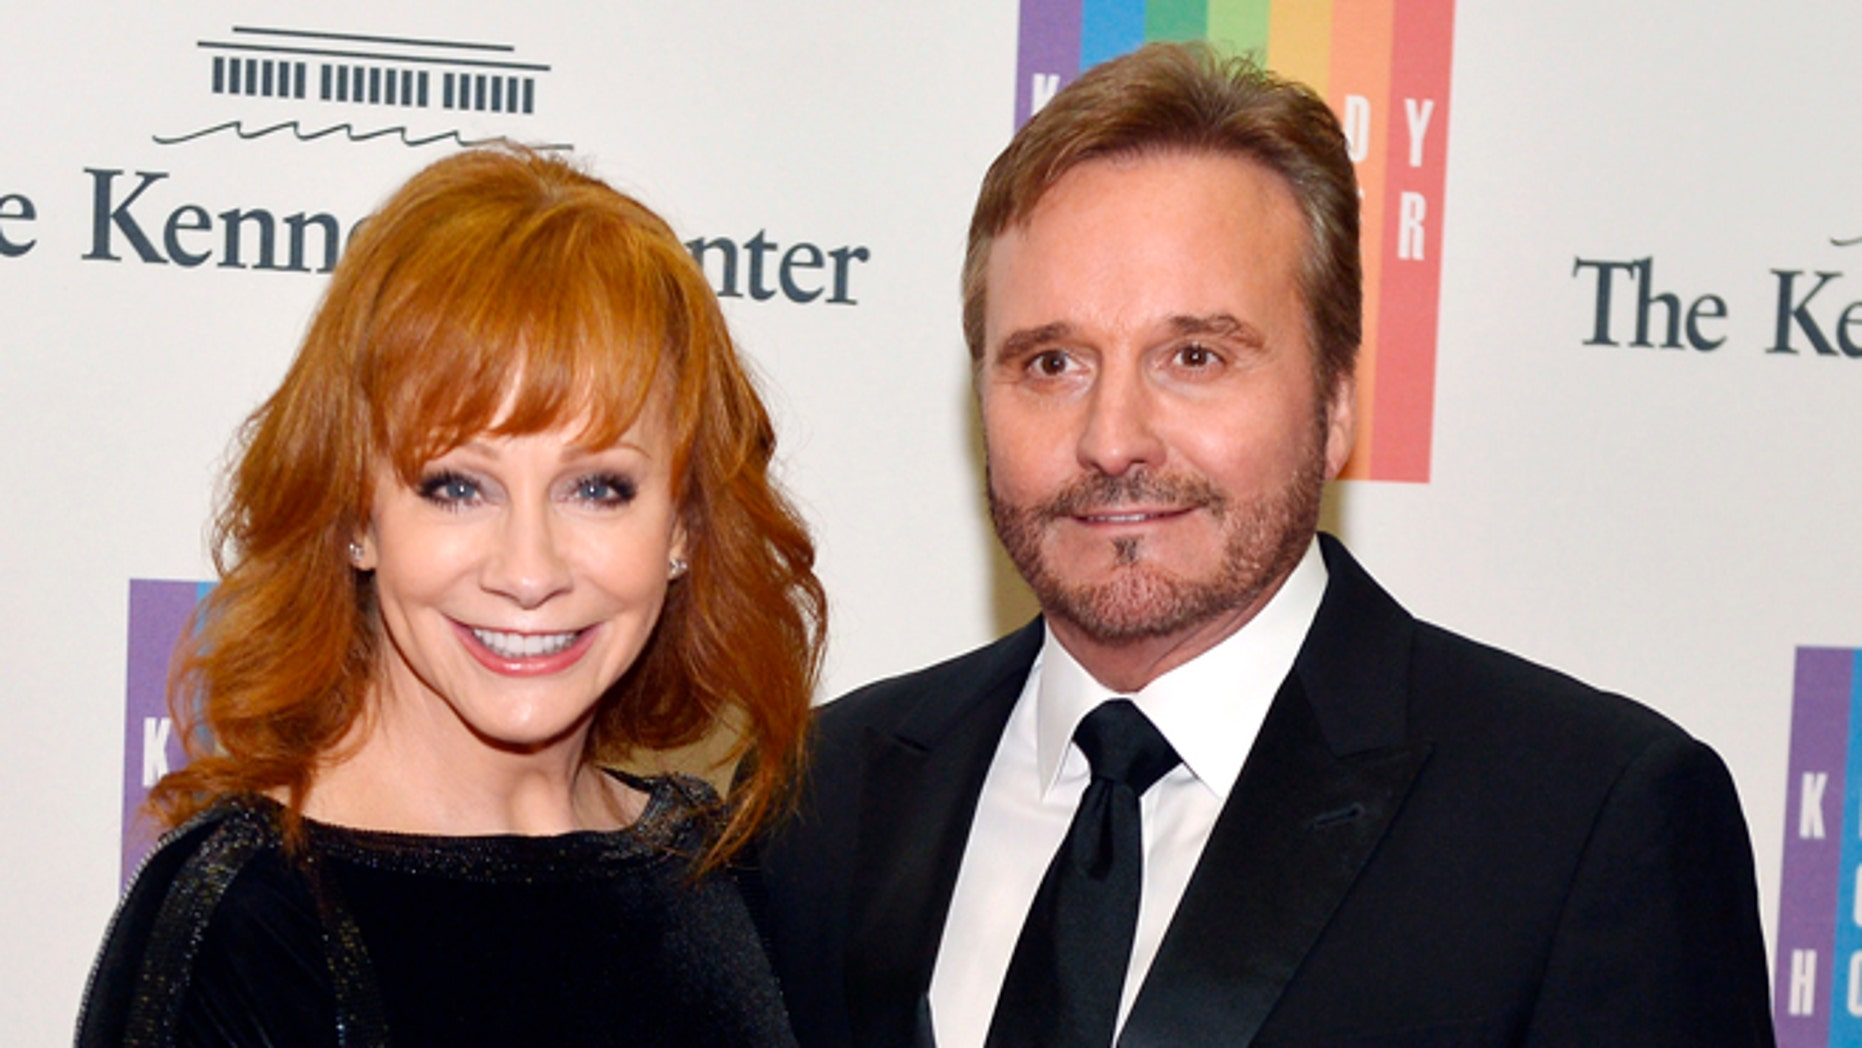 December 6, 2014. Country singer Reba McEntire and her husband Narvel Blackstock pose on the red carpet as they arrive ahead of the 37th Annual Kennedy Center gala dinner.